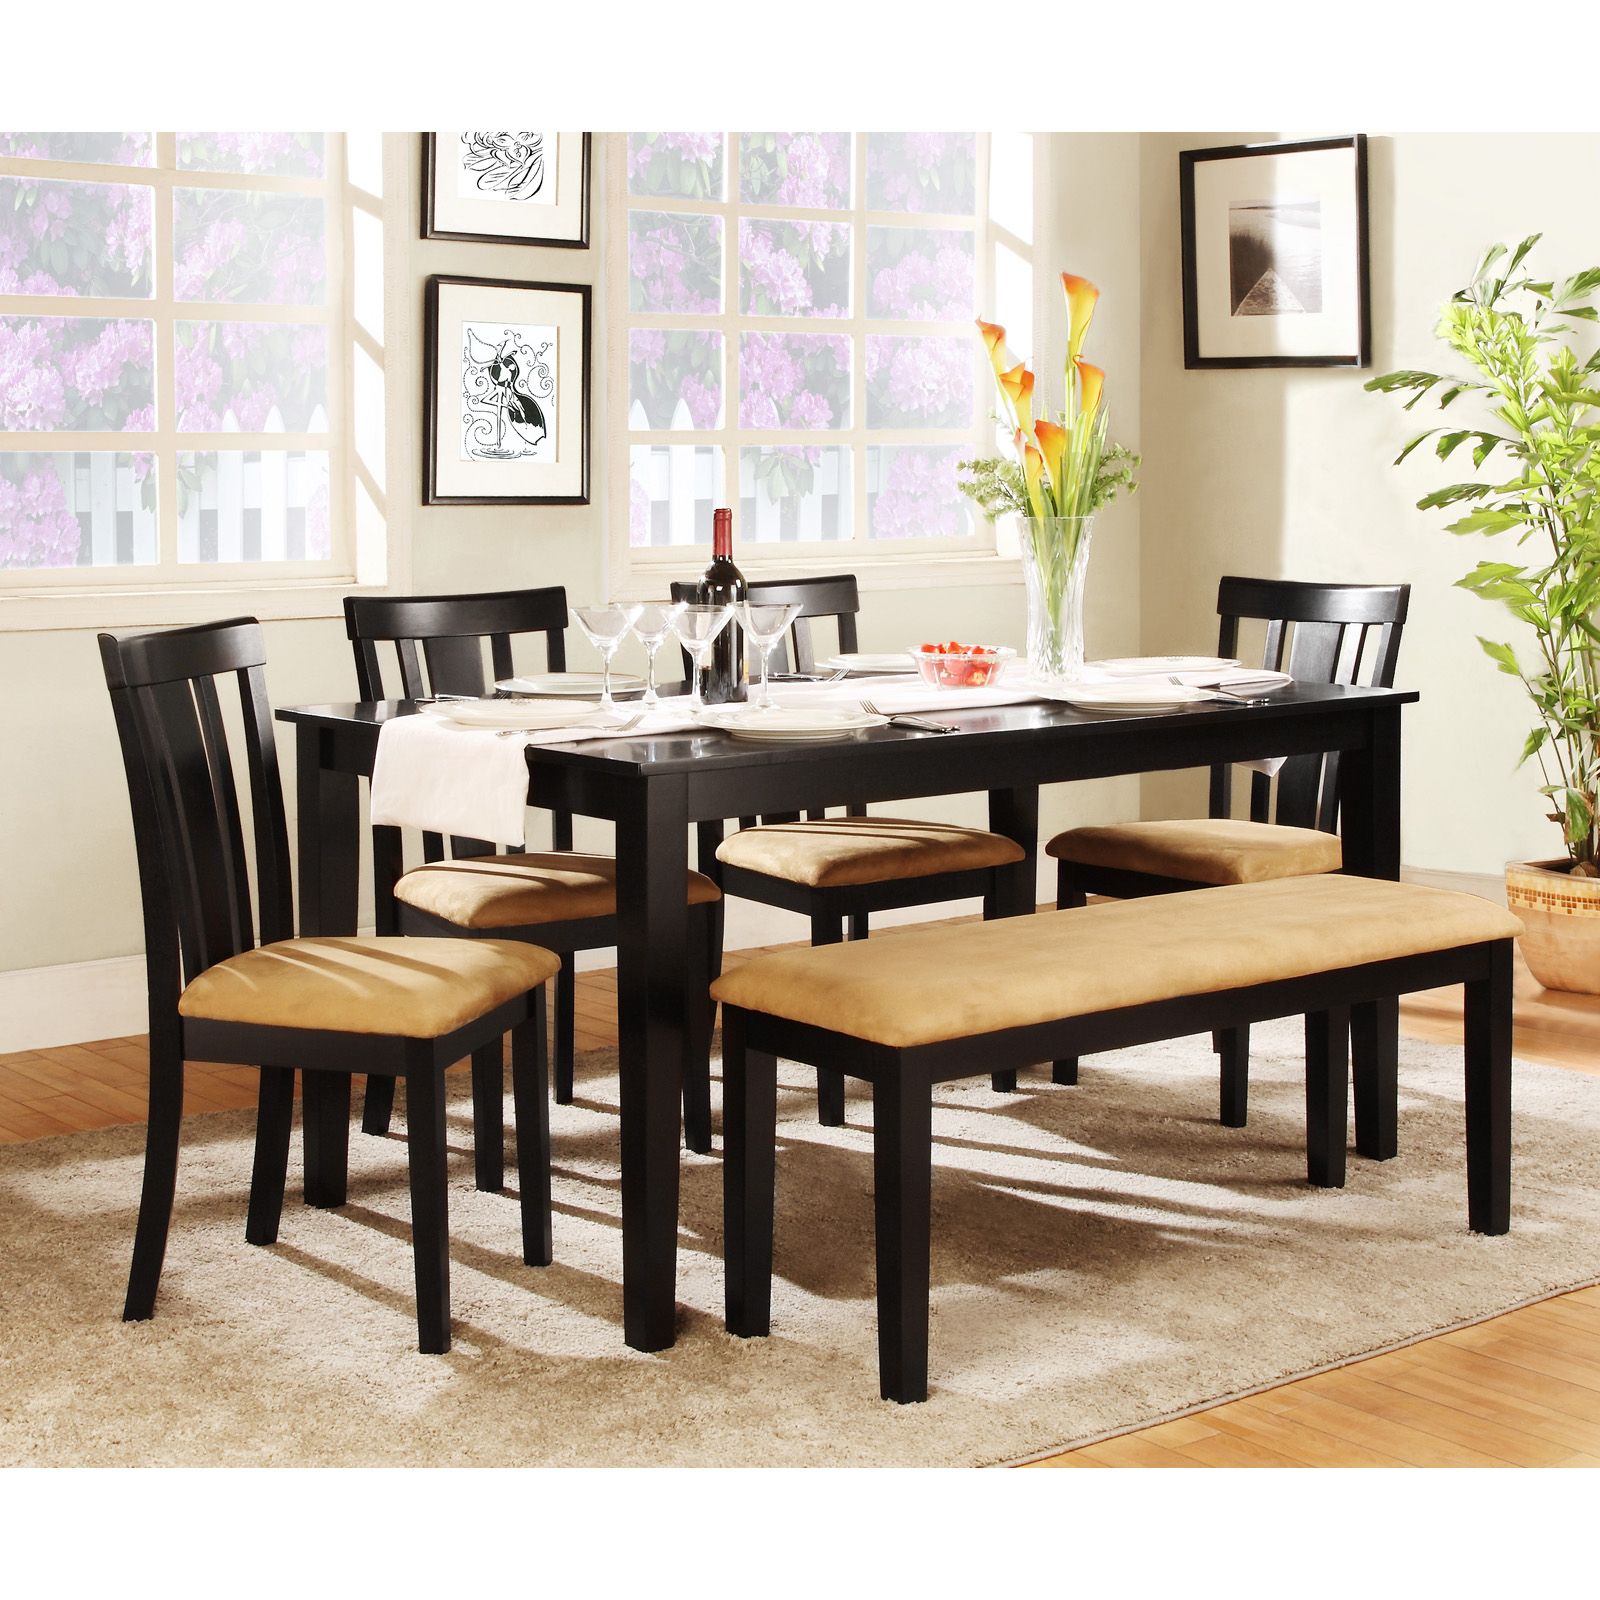 Kitchen Benches With Backs Rectangle Dining Table With Bench Dining Room Table Aberdeen Wood